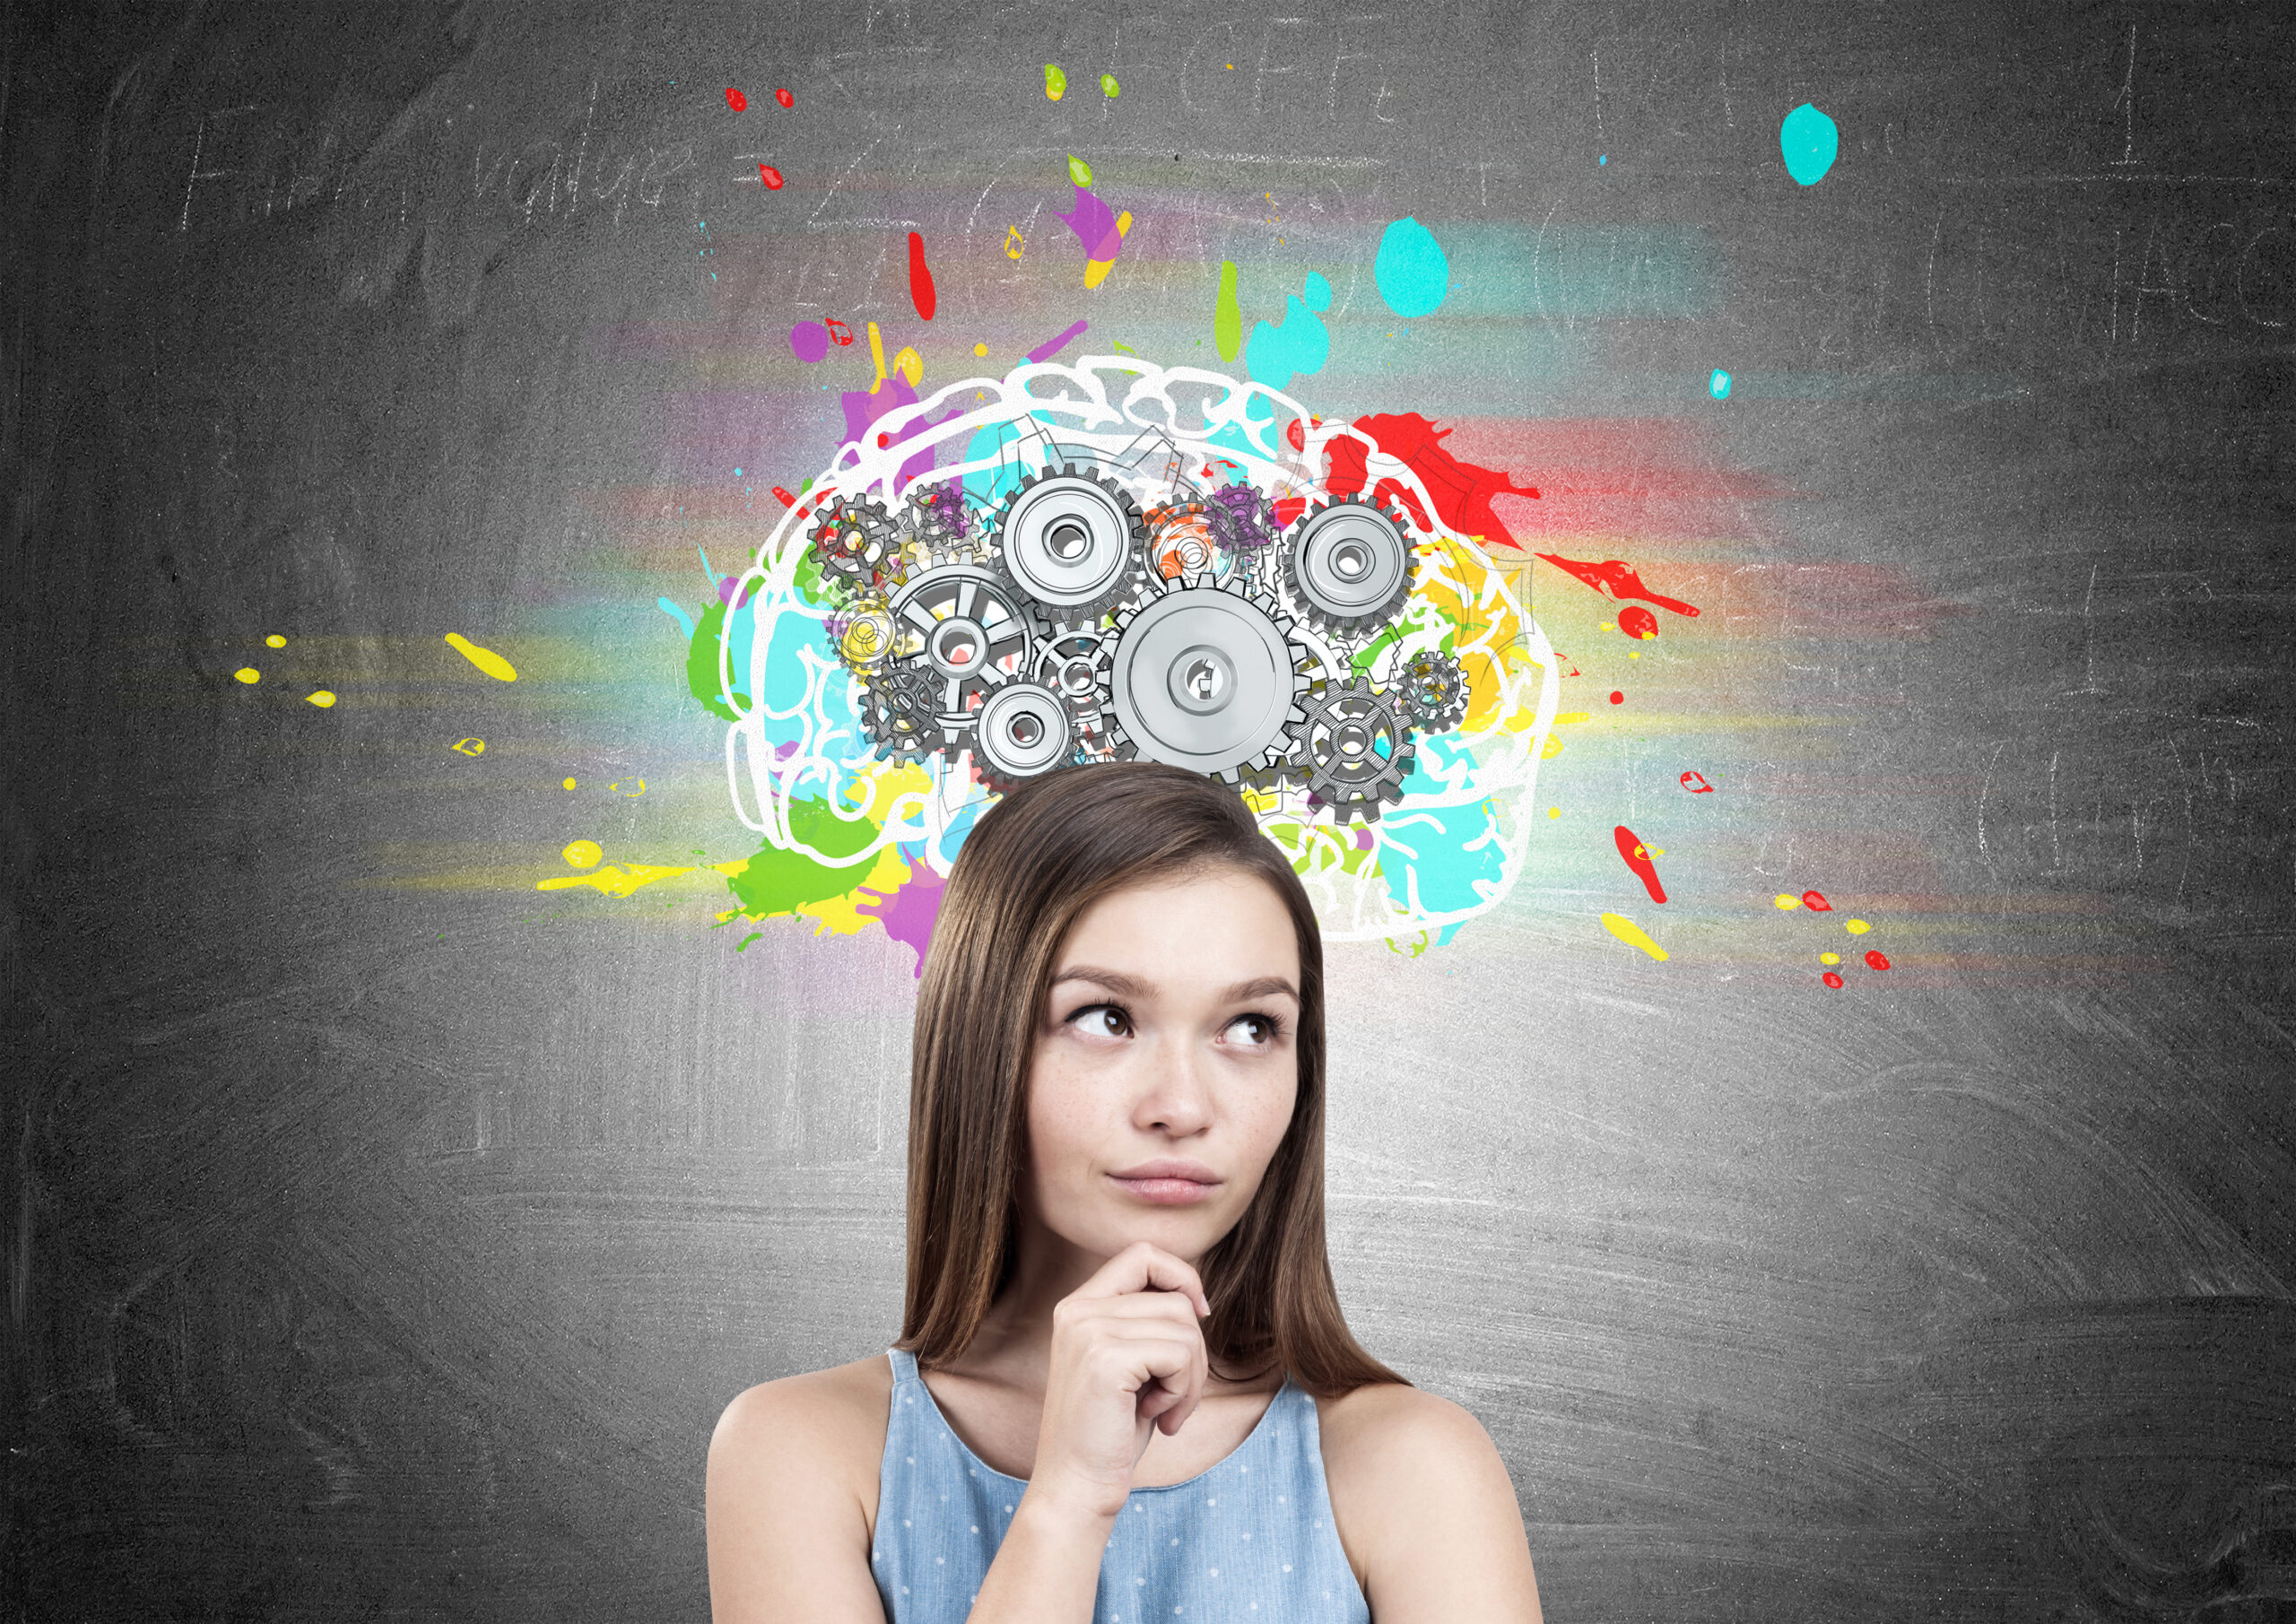 Portrait of a dreamy teen girl wearing a blue dress and holding her hands near the face. She is standing near a blackboard with a colorful brain sketch and gears on top of it